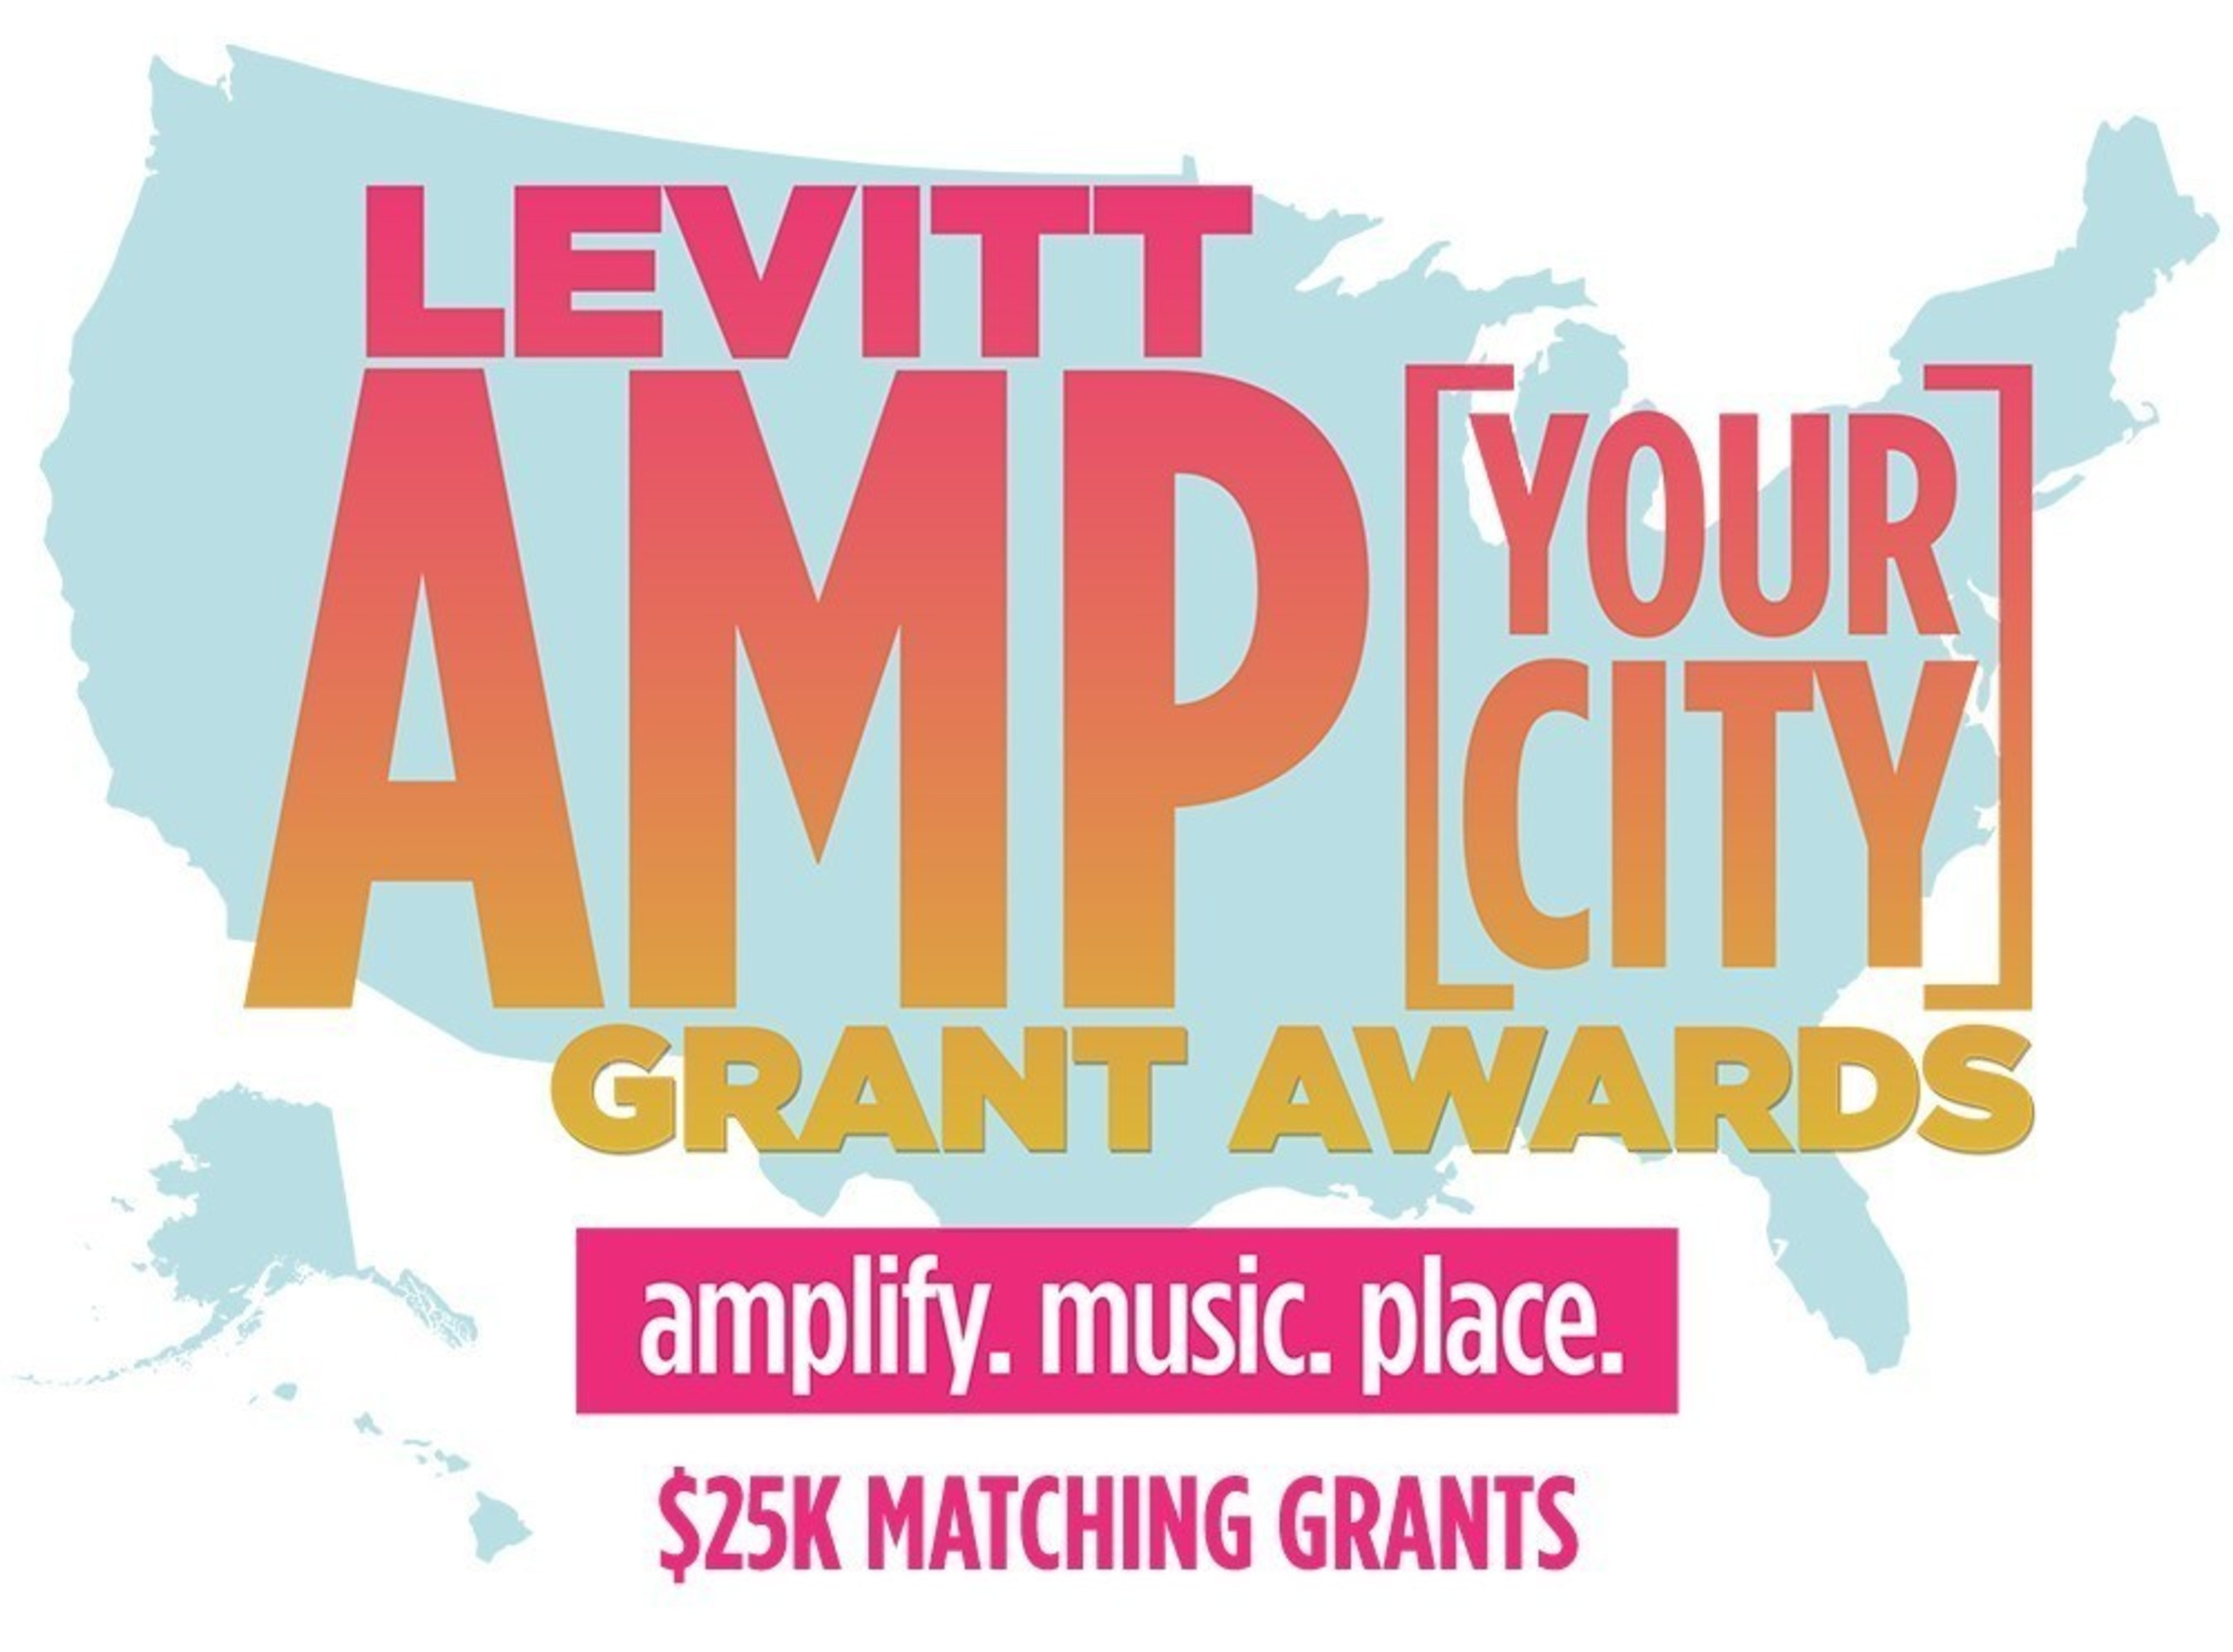 Bring free outdoor concerts to your small to mid-sized town or city! Applications are now open to win a $25K matching grant through the Levitt AMP [Your City] Grant Awards.